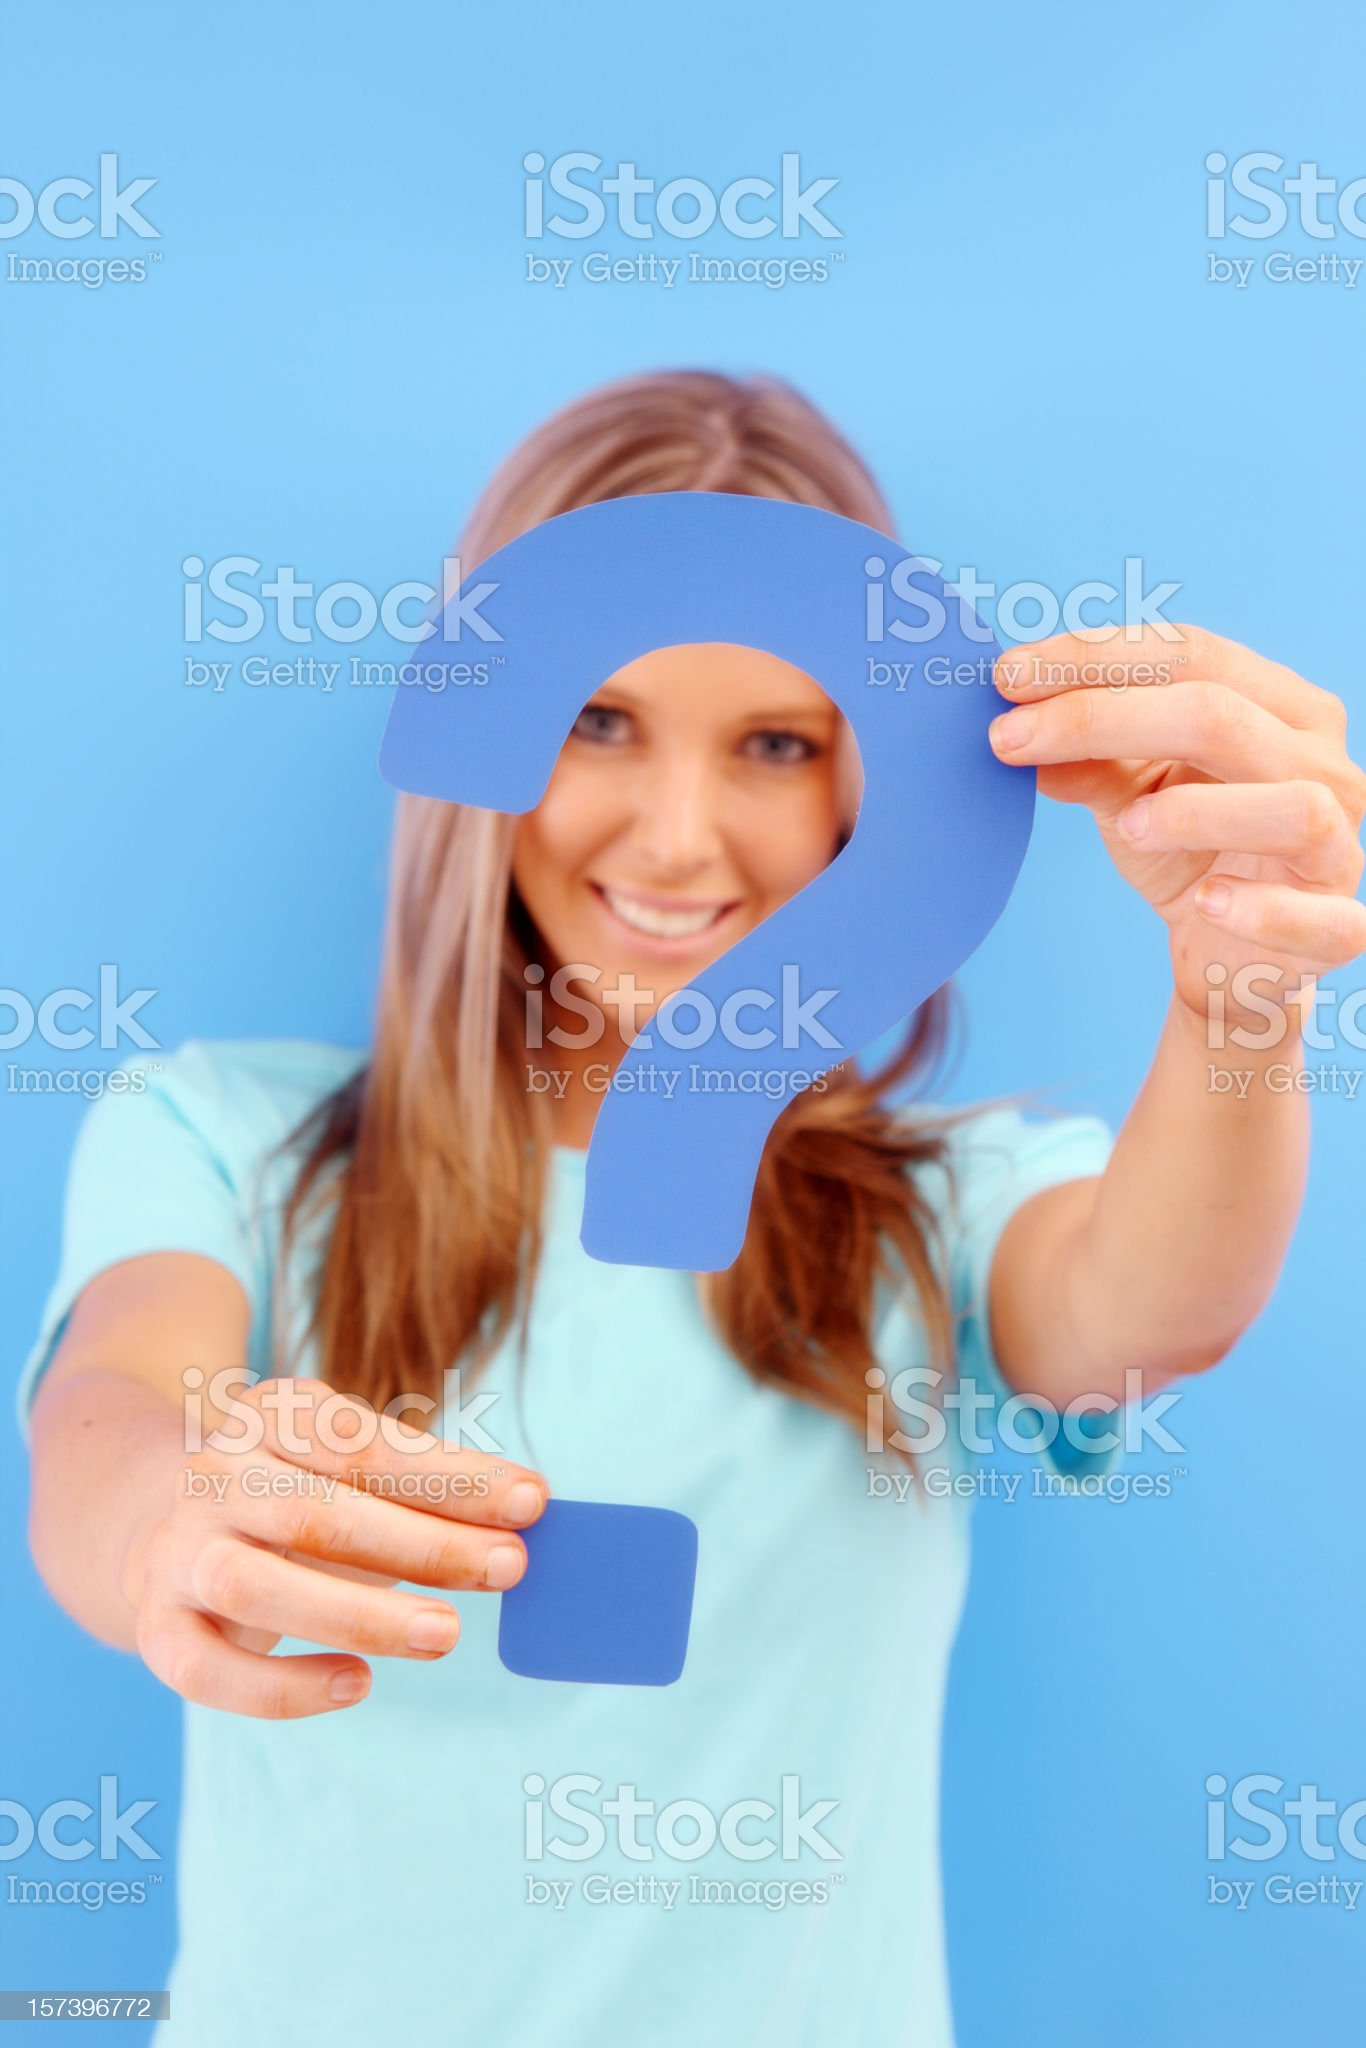 Your Questions royalty-free stock photo